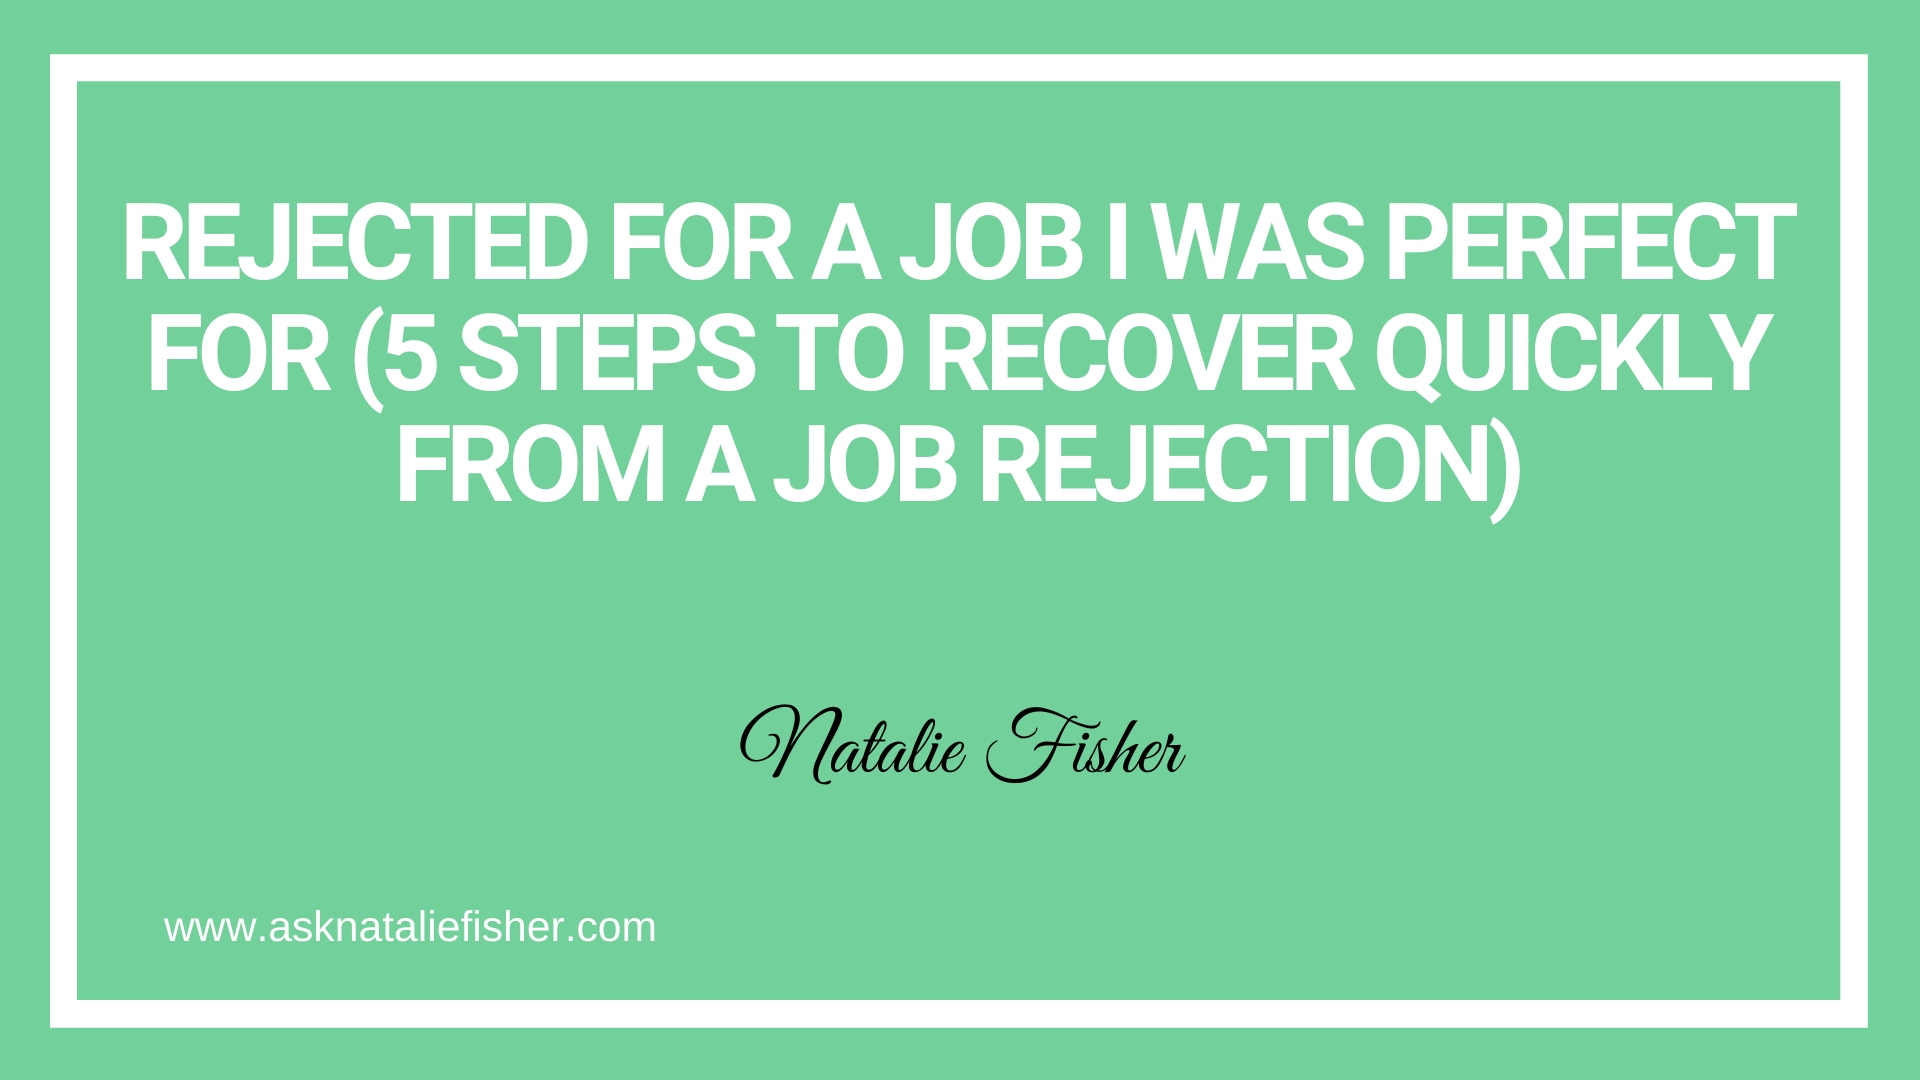 Rejected For A Job I Was Perfect For (5 Steps To Recover Quickly From A Job Rejection)